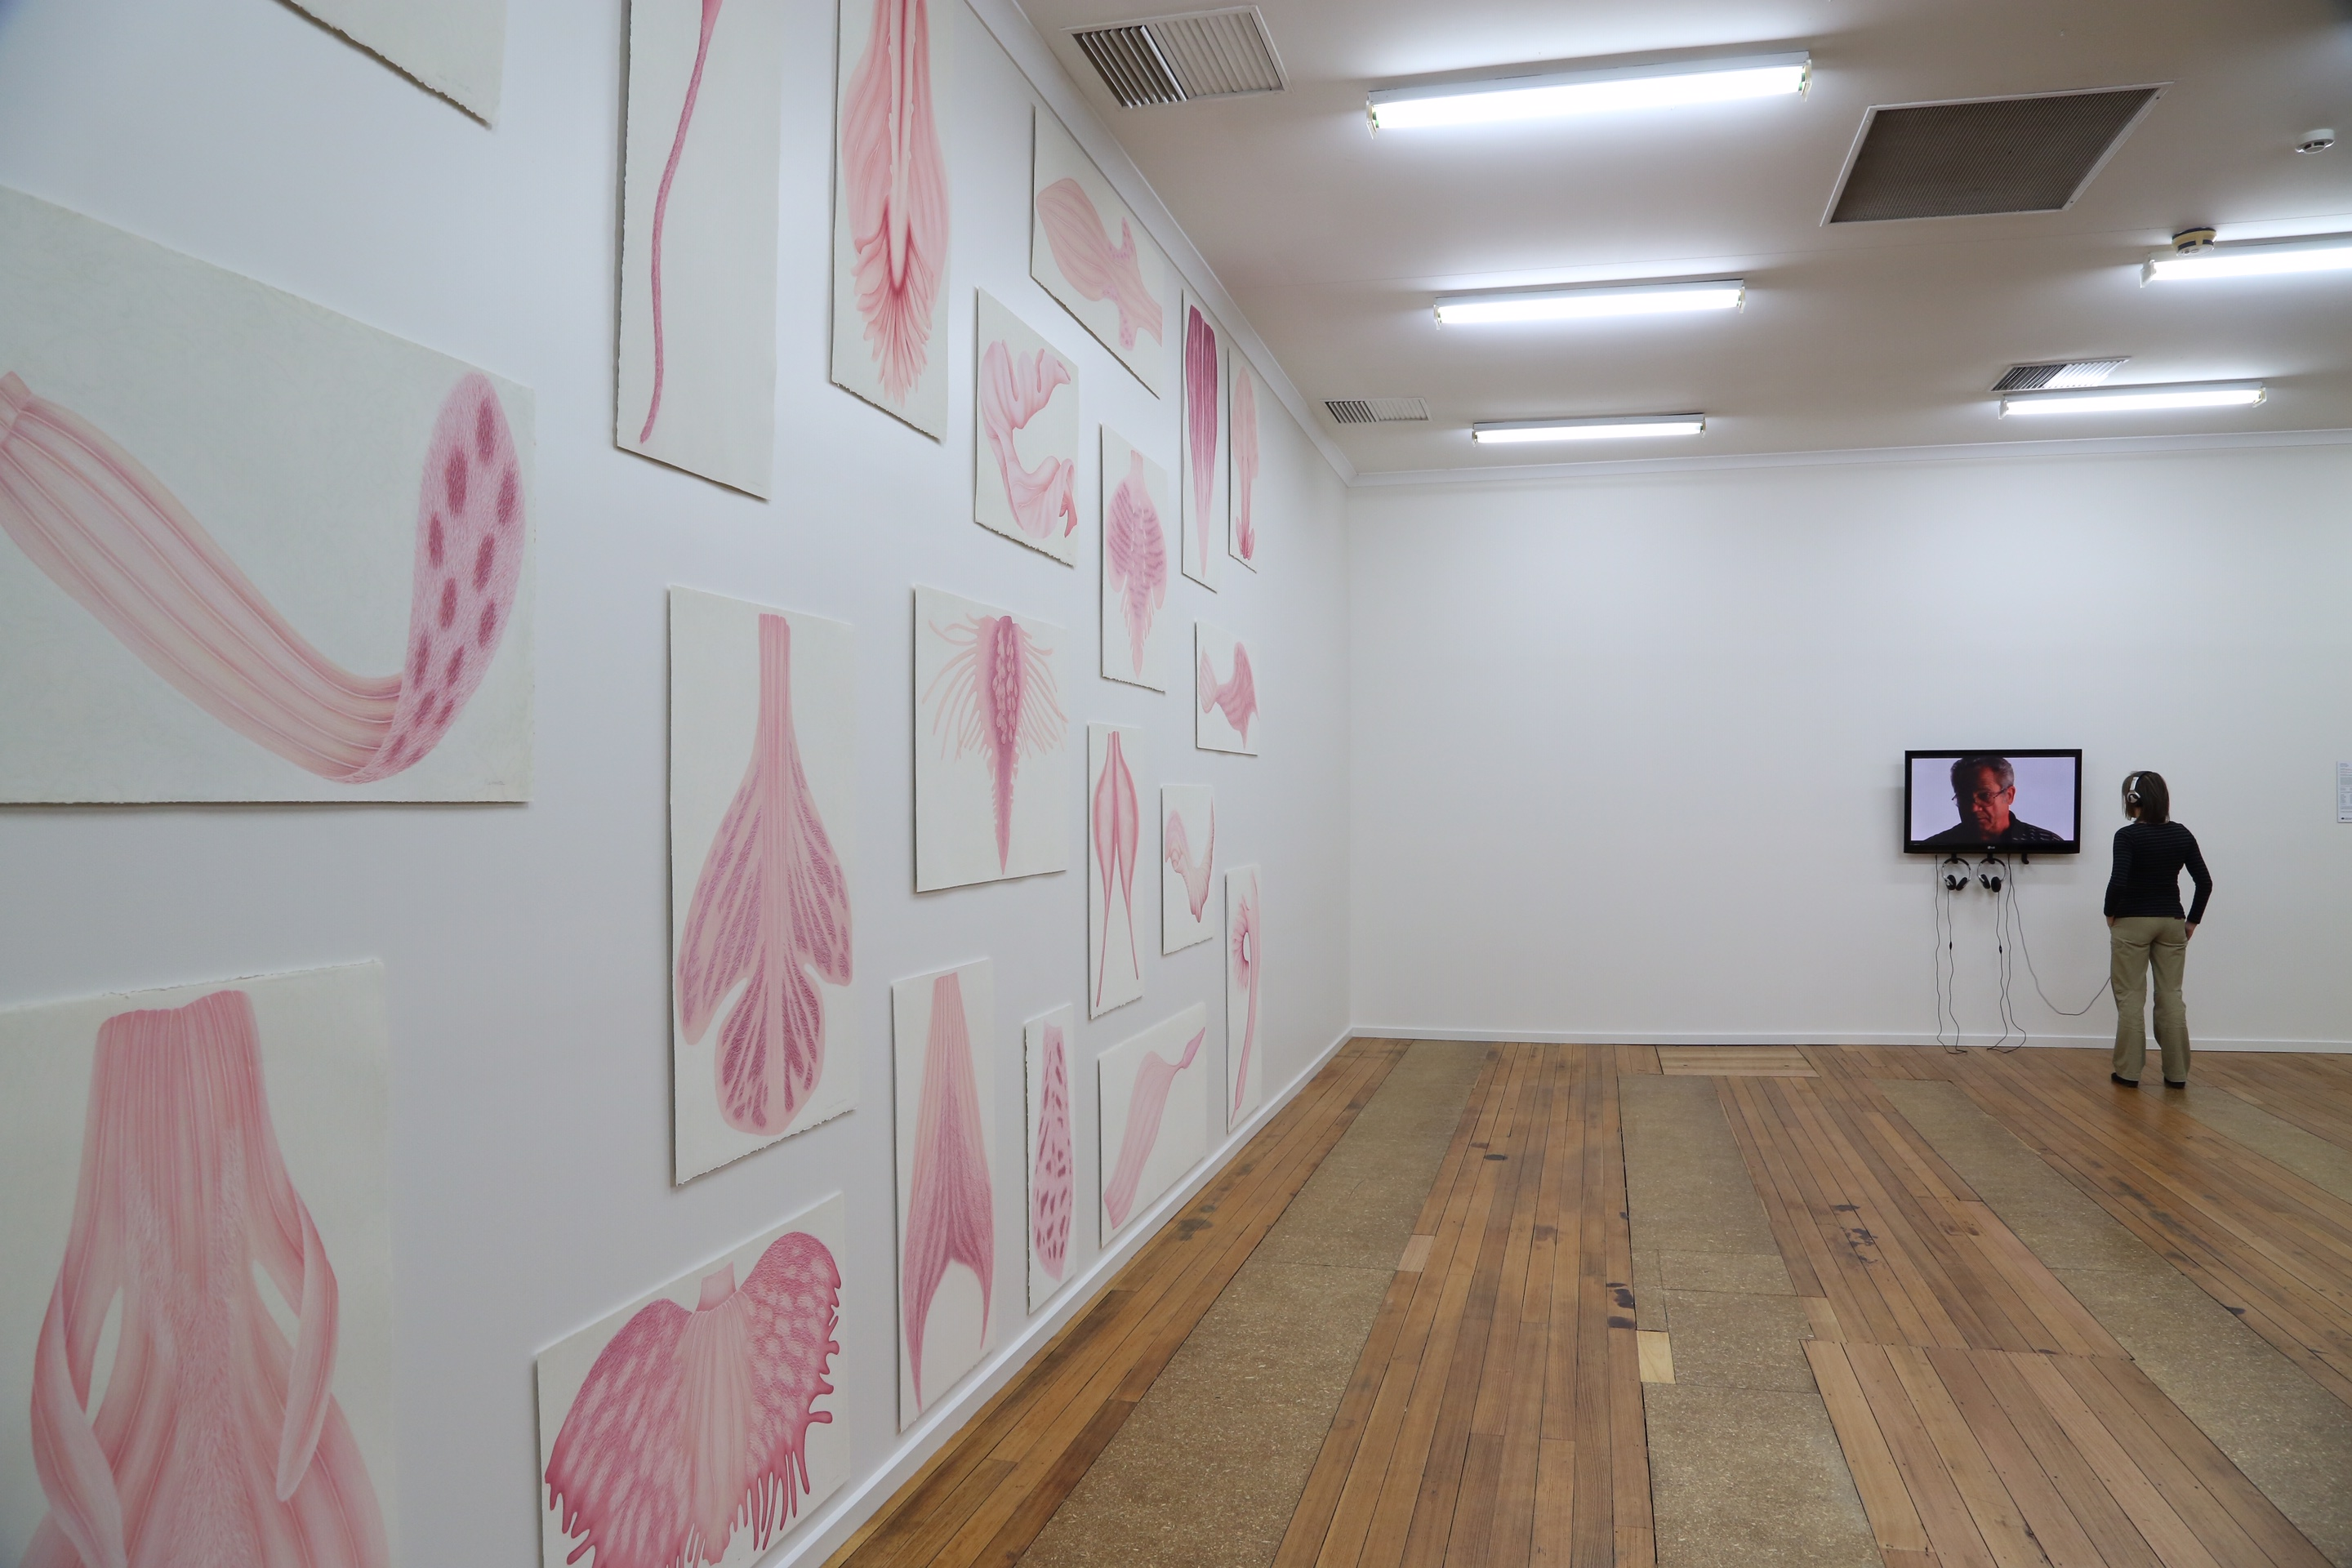 Mother Tongue, Installation View Mother Tongue, 2013, 20 drawings, each titled after one of the 20 regions of Italy, pastel on paper, overall 345h x 615w cm, 2013 Alphabet sound component, duration 4:43, Documentary Film, duration 15:29.